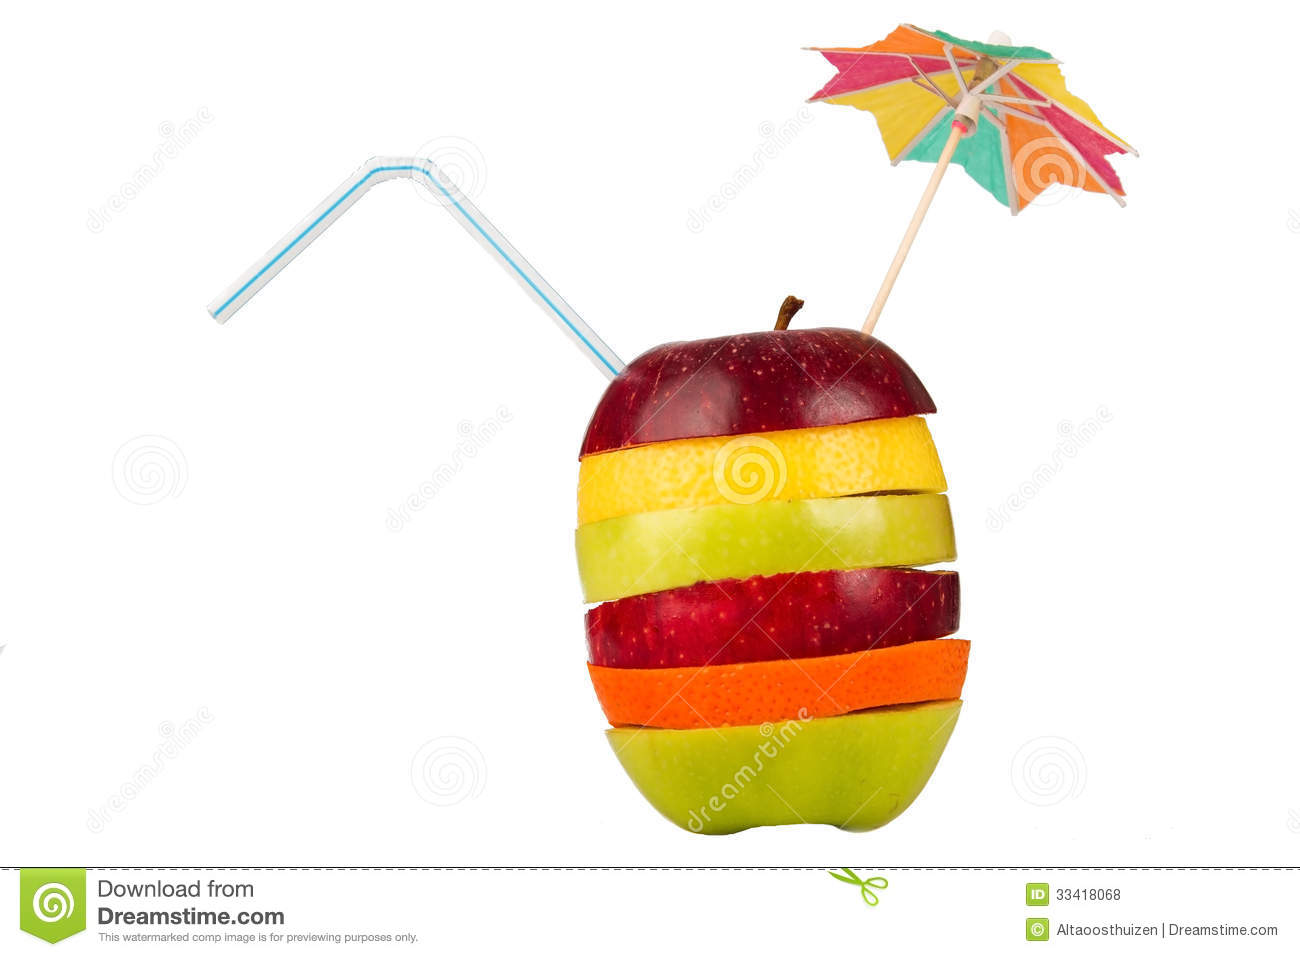 Stack of sliced fruit with straw and umbrella